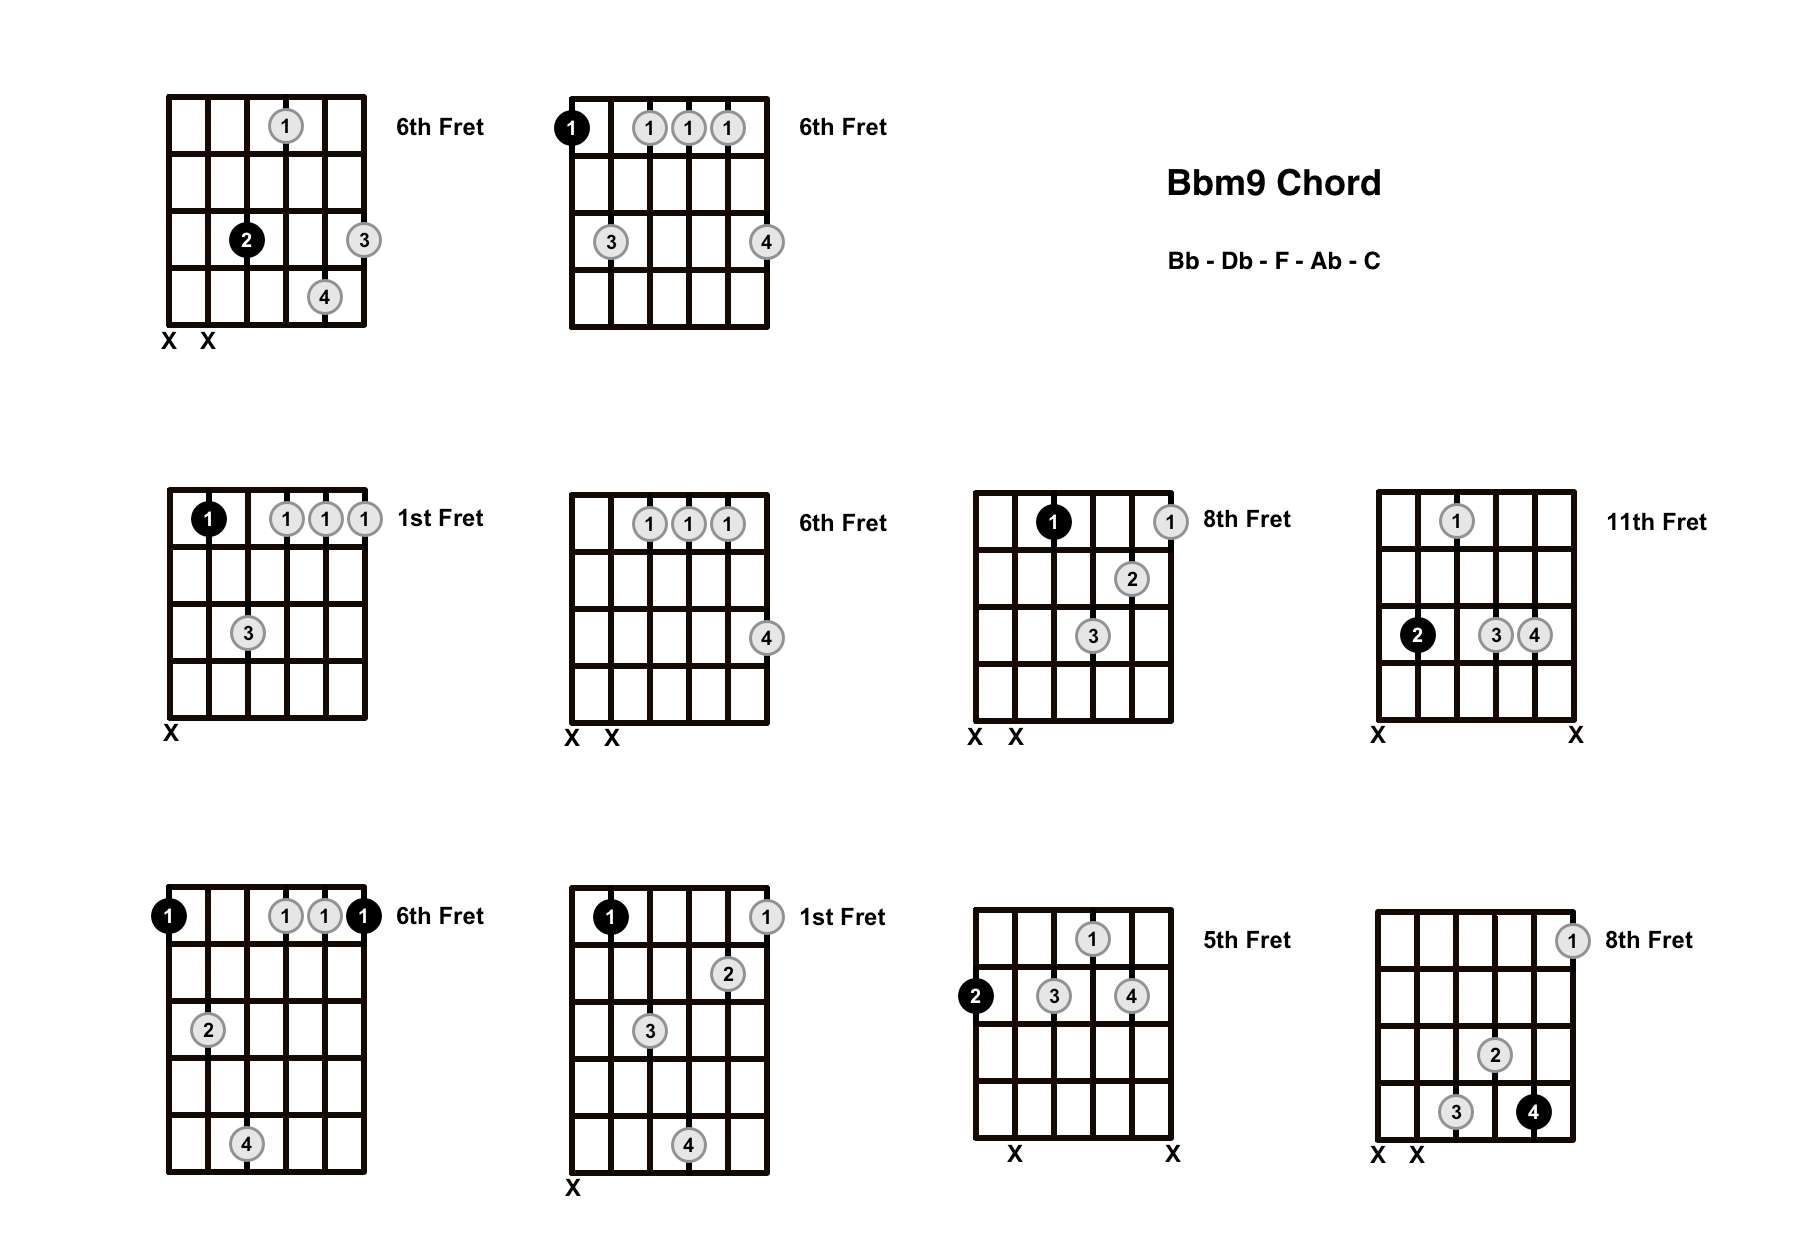 Bbm9 Chord On The Guitar (B Flat Minor 9) – Diagrams, Finger Positions and Theory